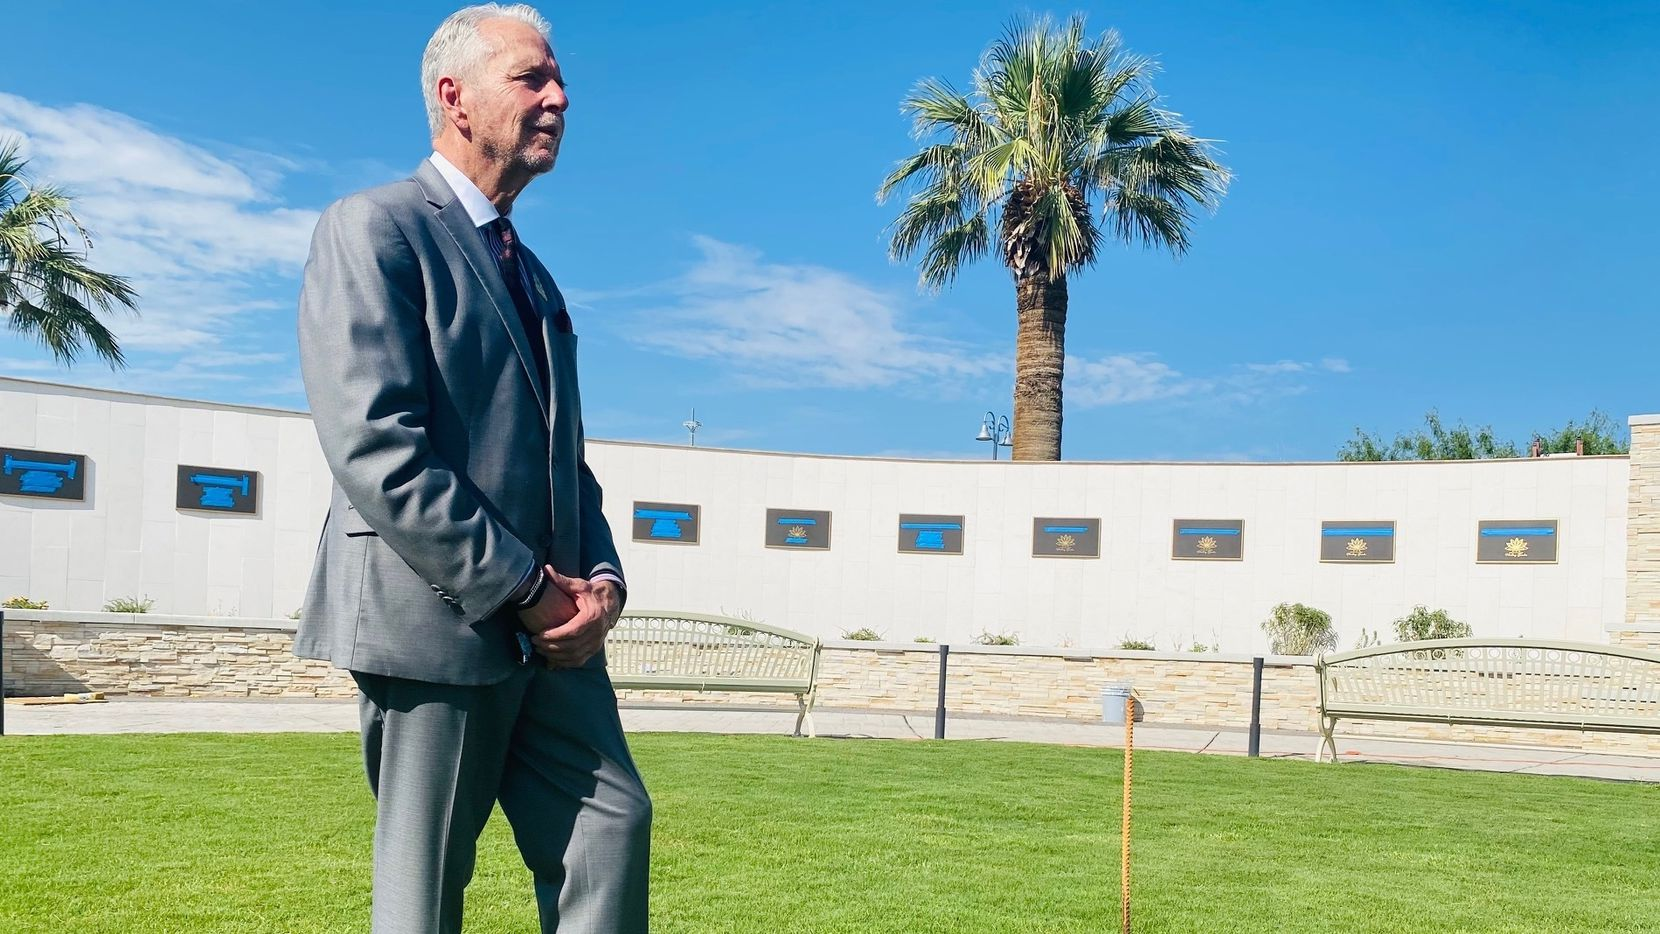 El Paso County Judge Ricardo Samaniego tours the new garden created to remember and honor the lives of those who died on Aug. 3, 2019.